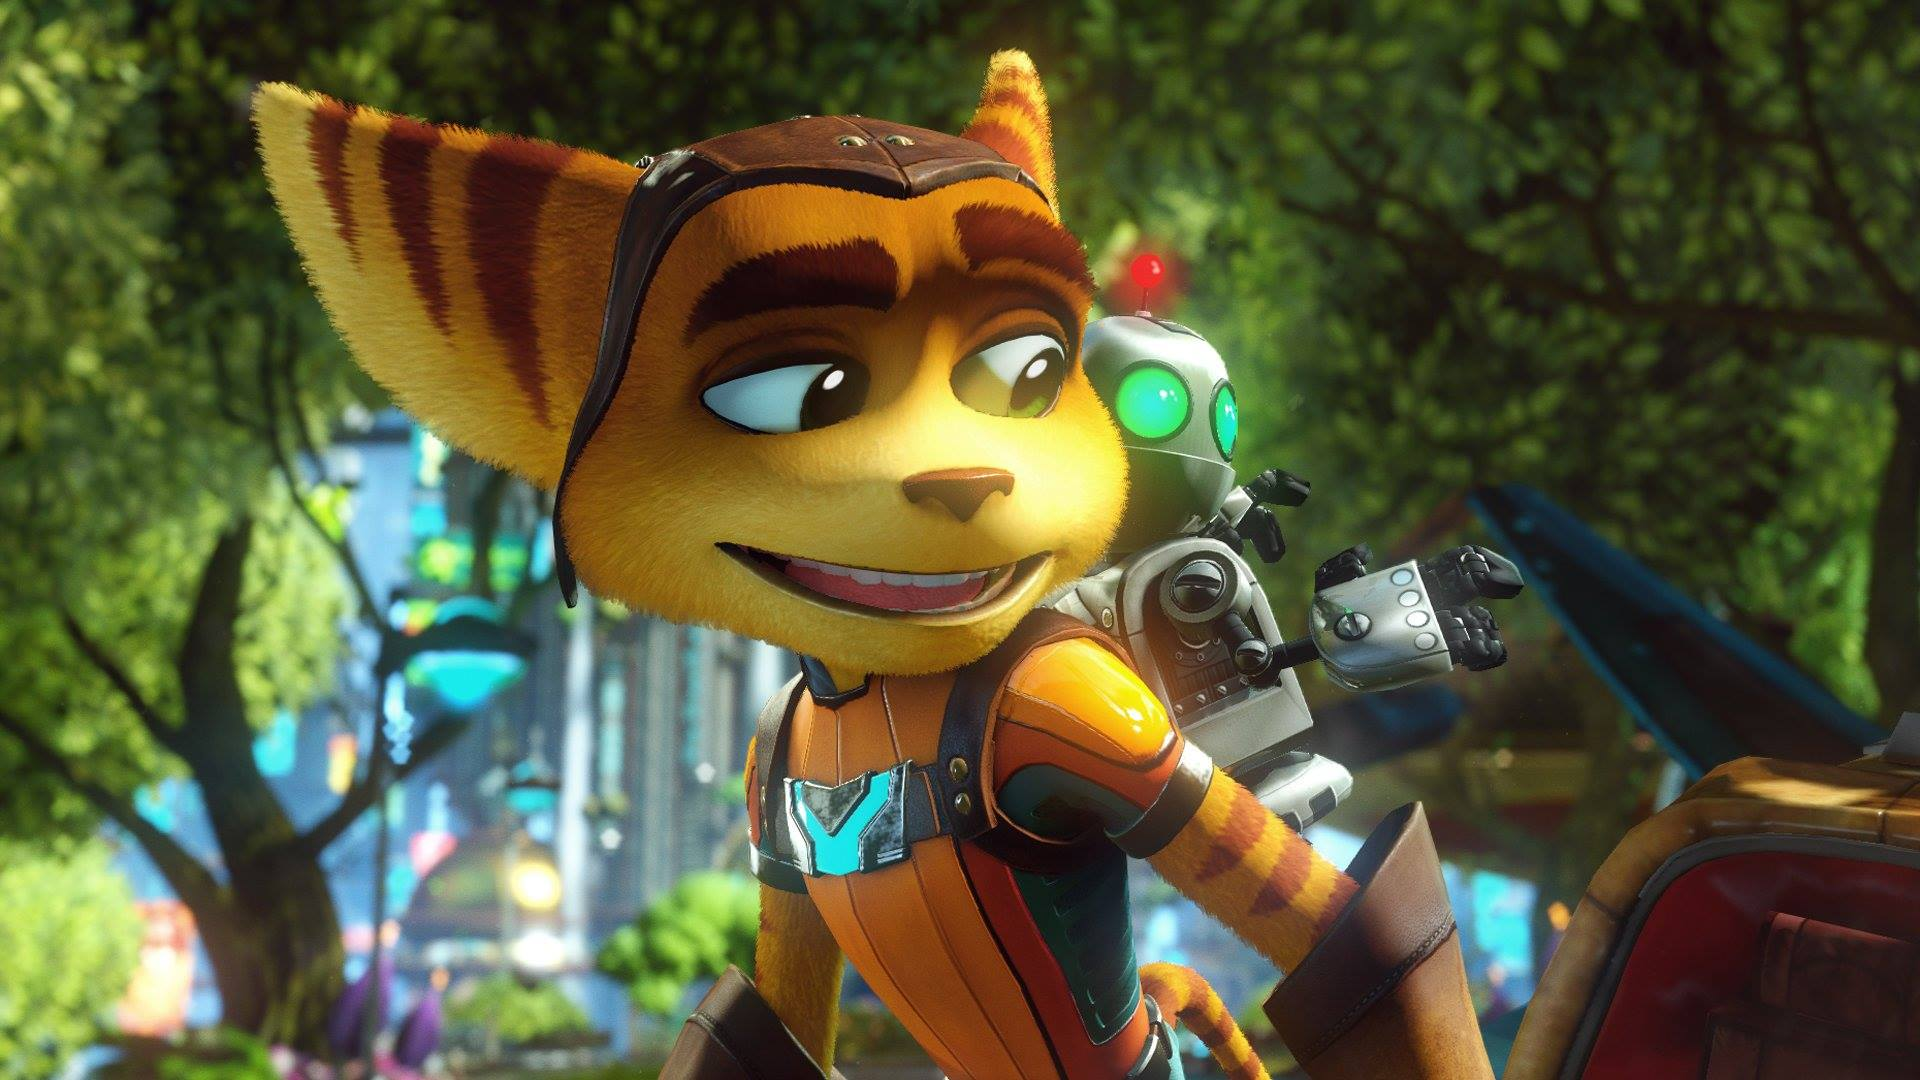 Bunch of $10 deals at GameStop: Ratchet and Clank, Star Wars Battlefront, and more screenshot